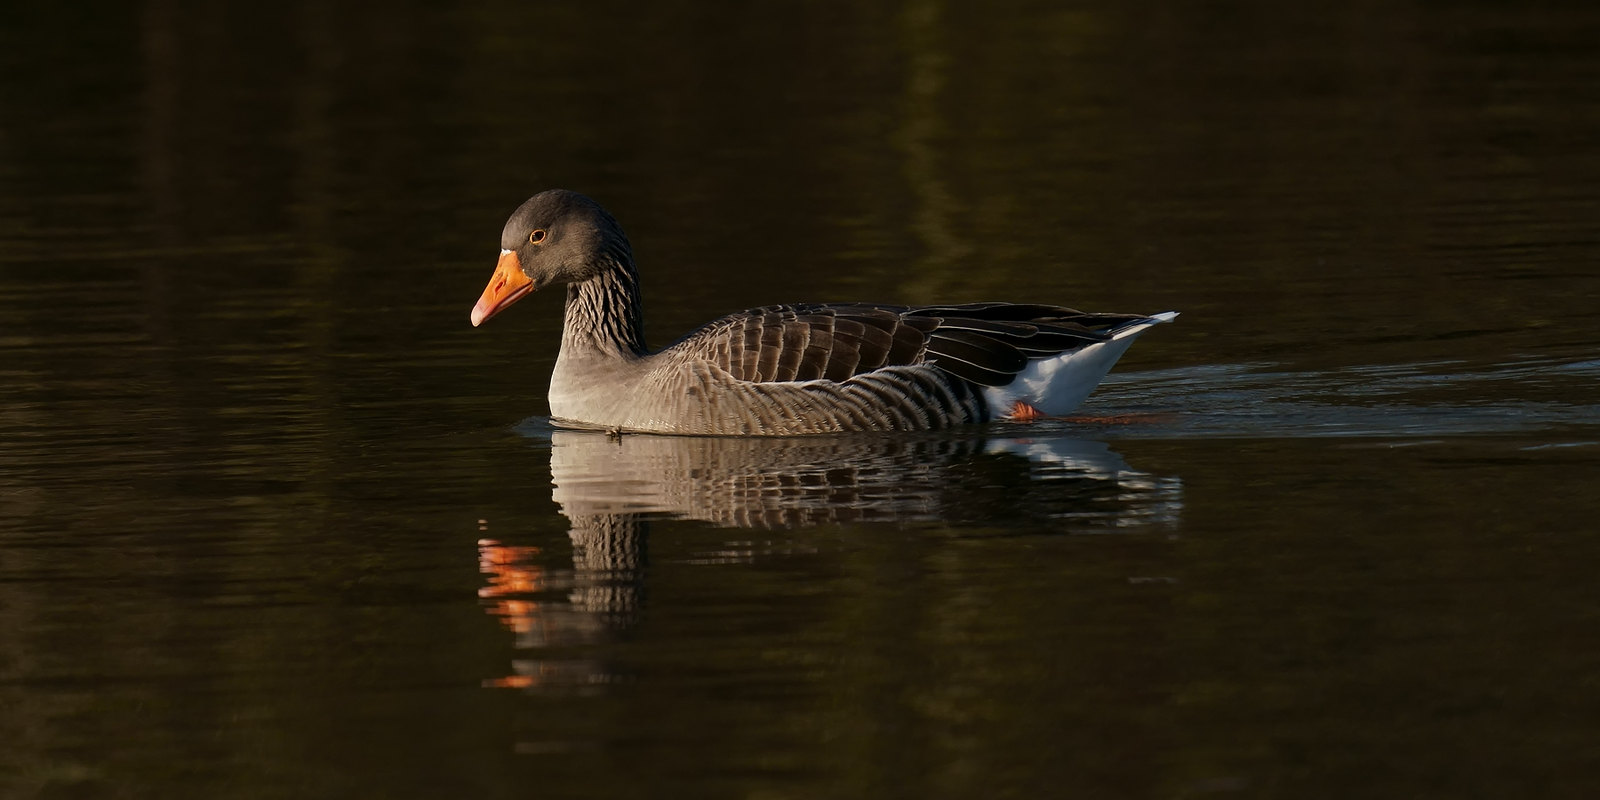 Greylag reflections